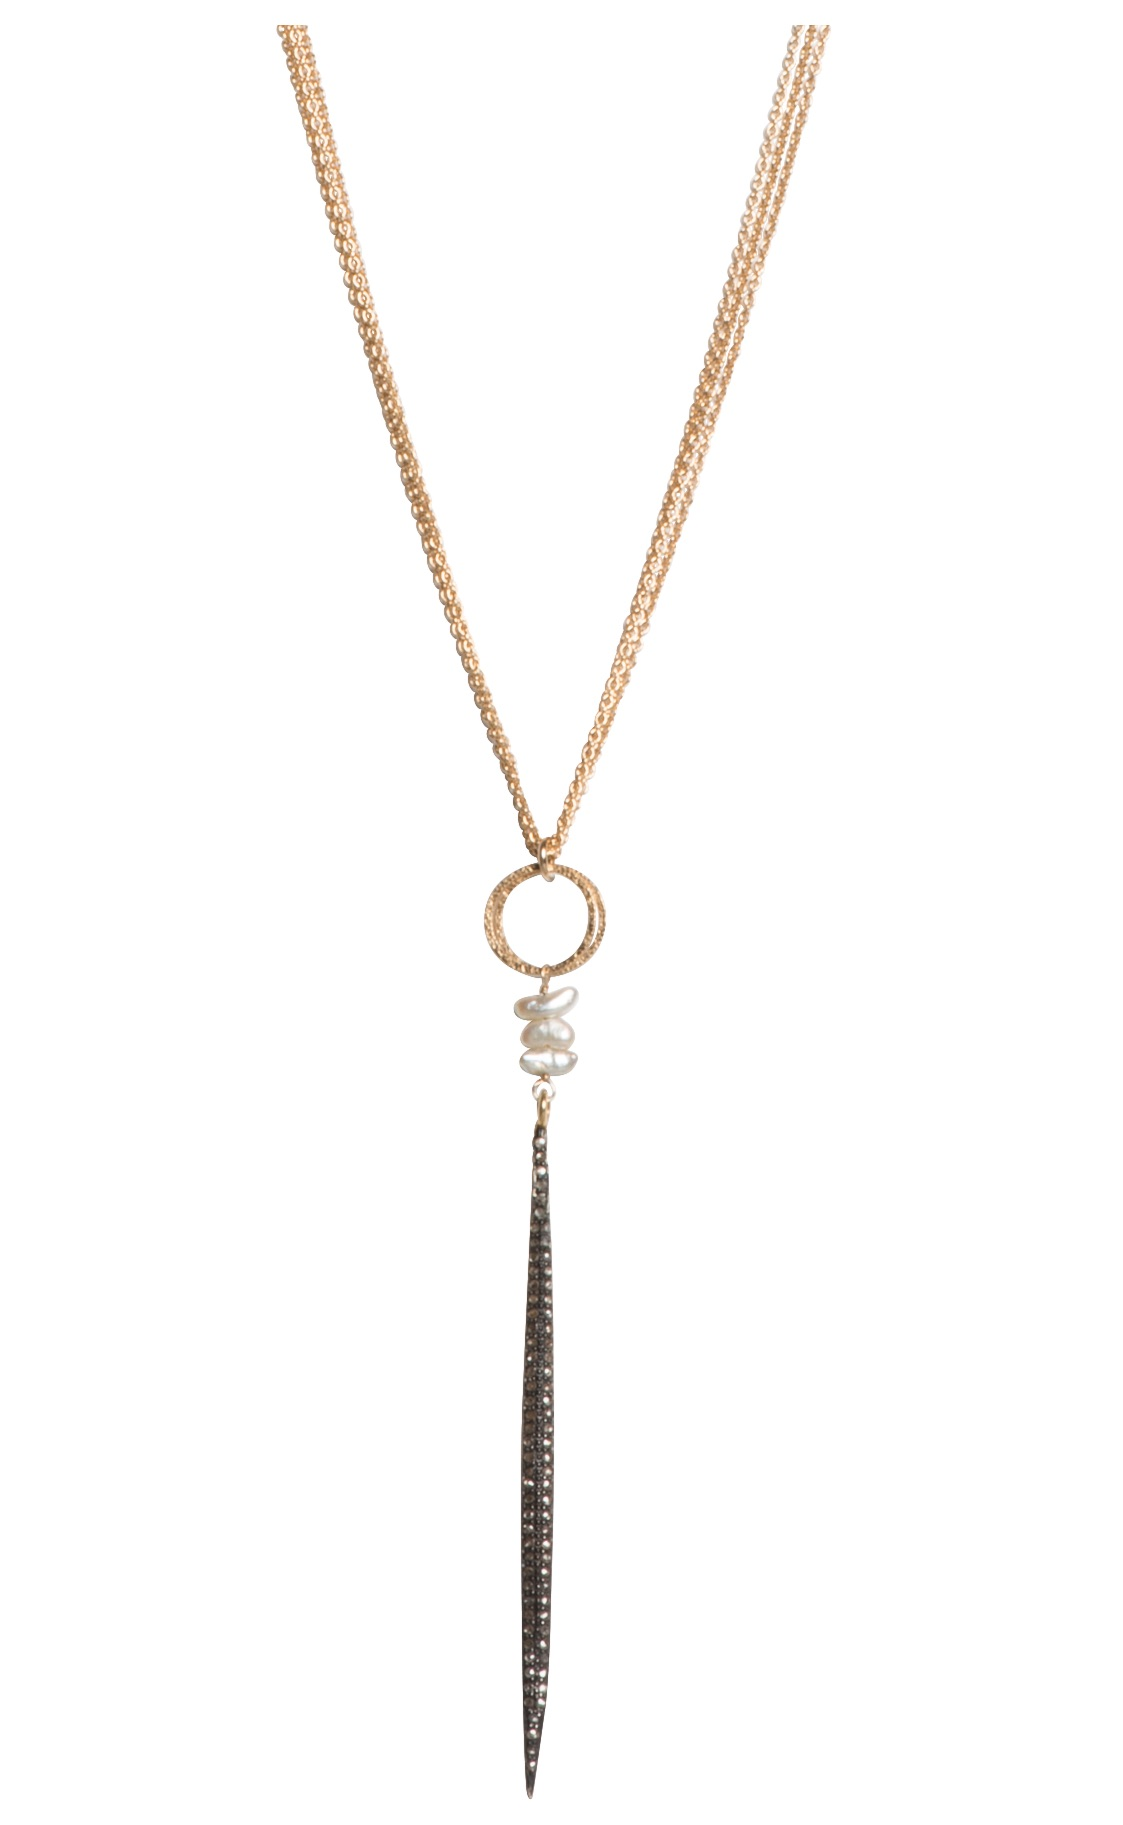 Tracy Arrington pearl and champagne diamond necklace | JCK On Your Market